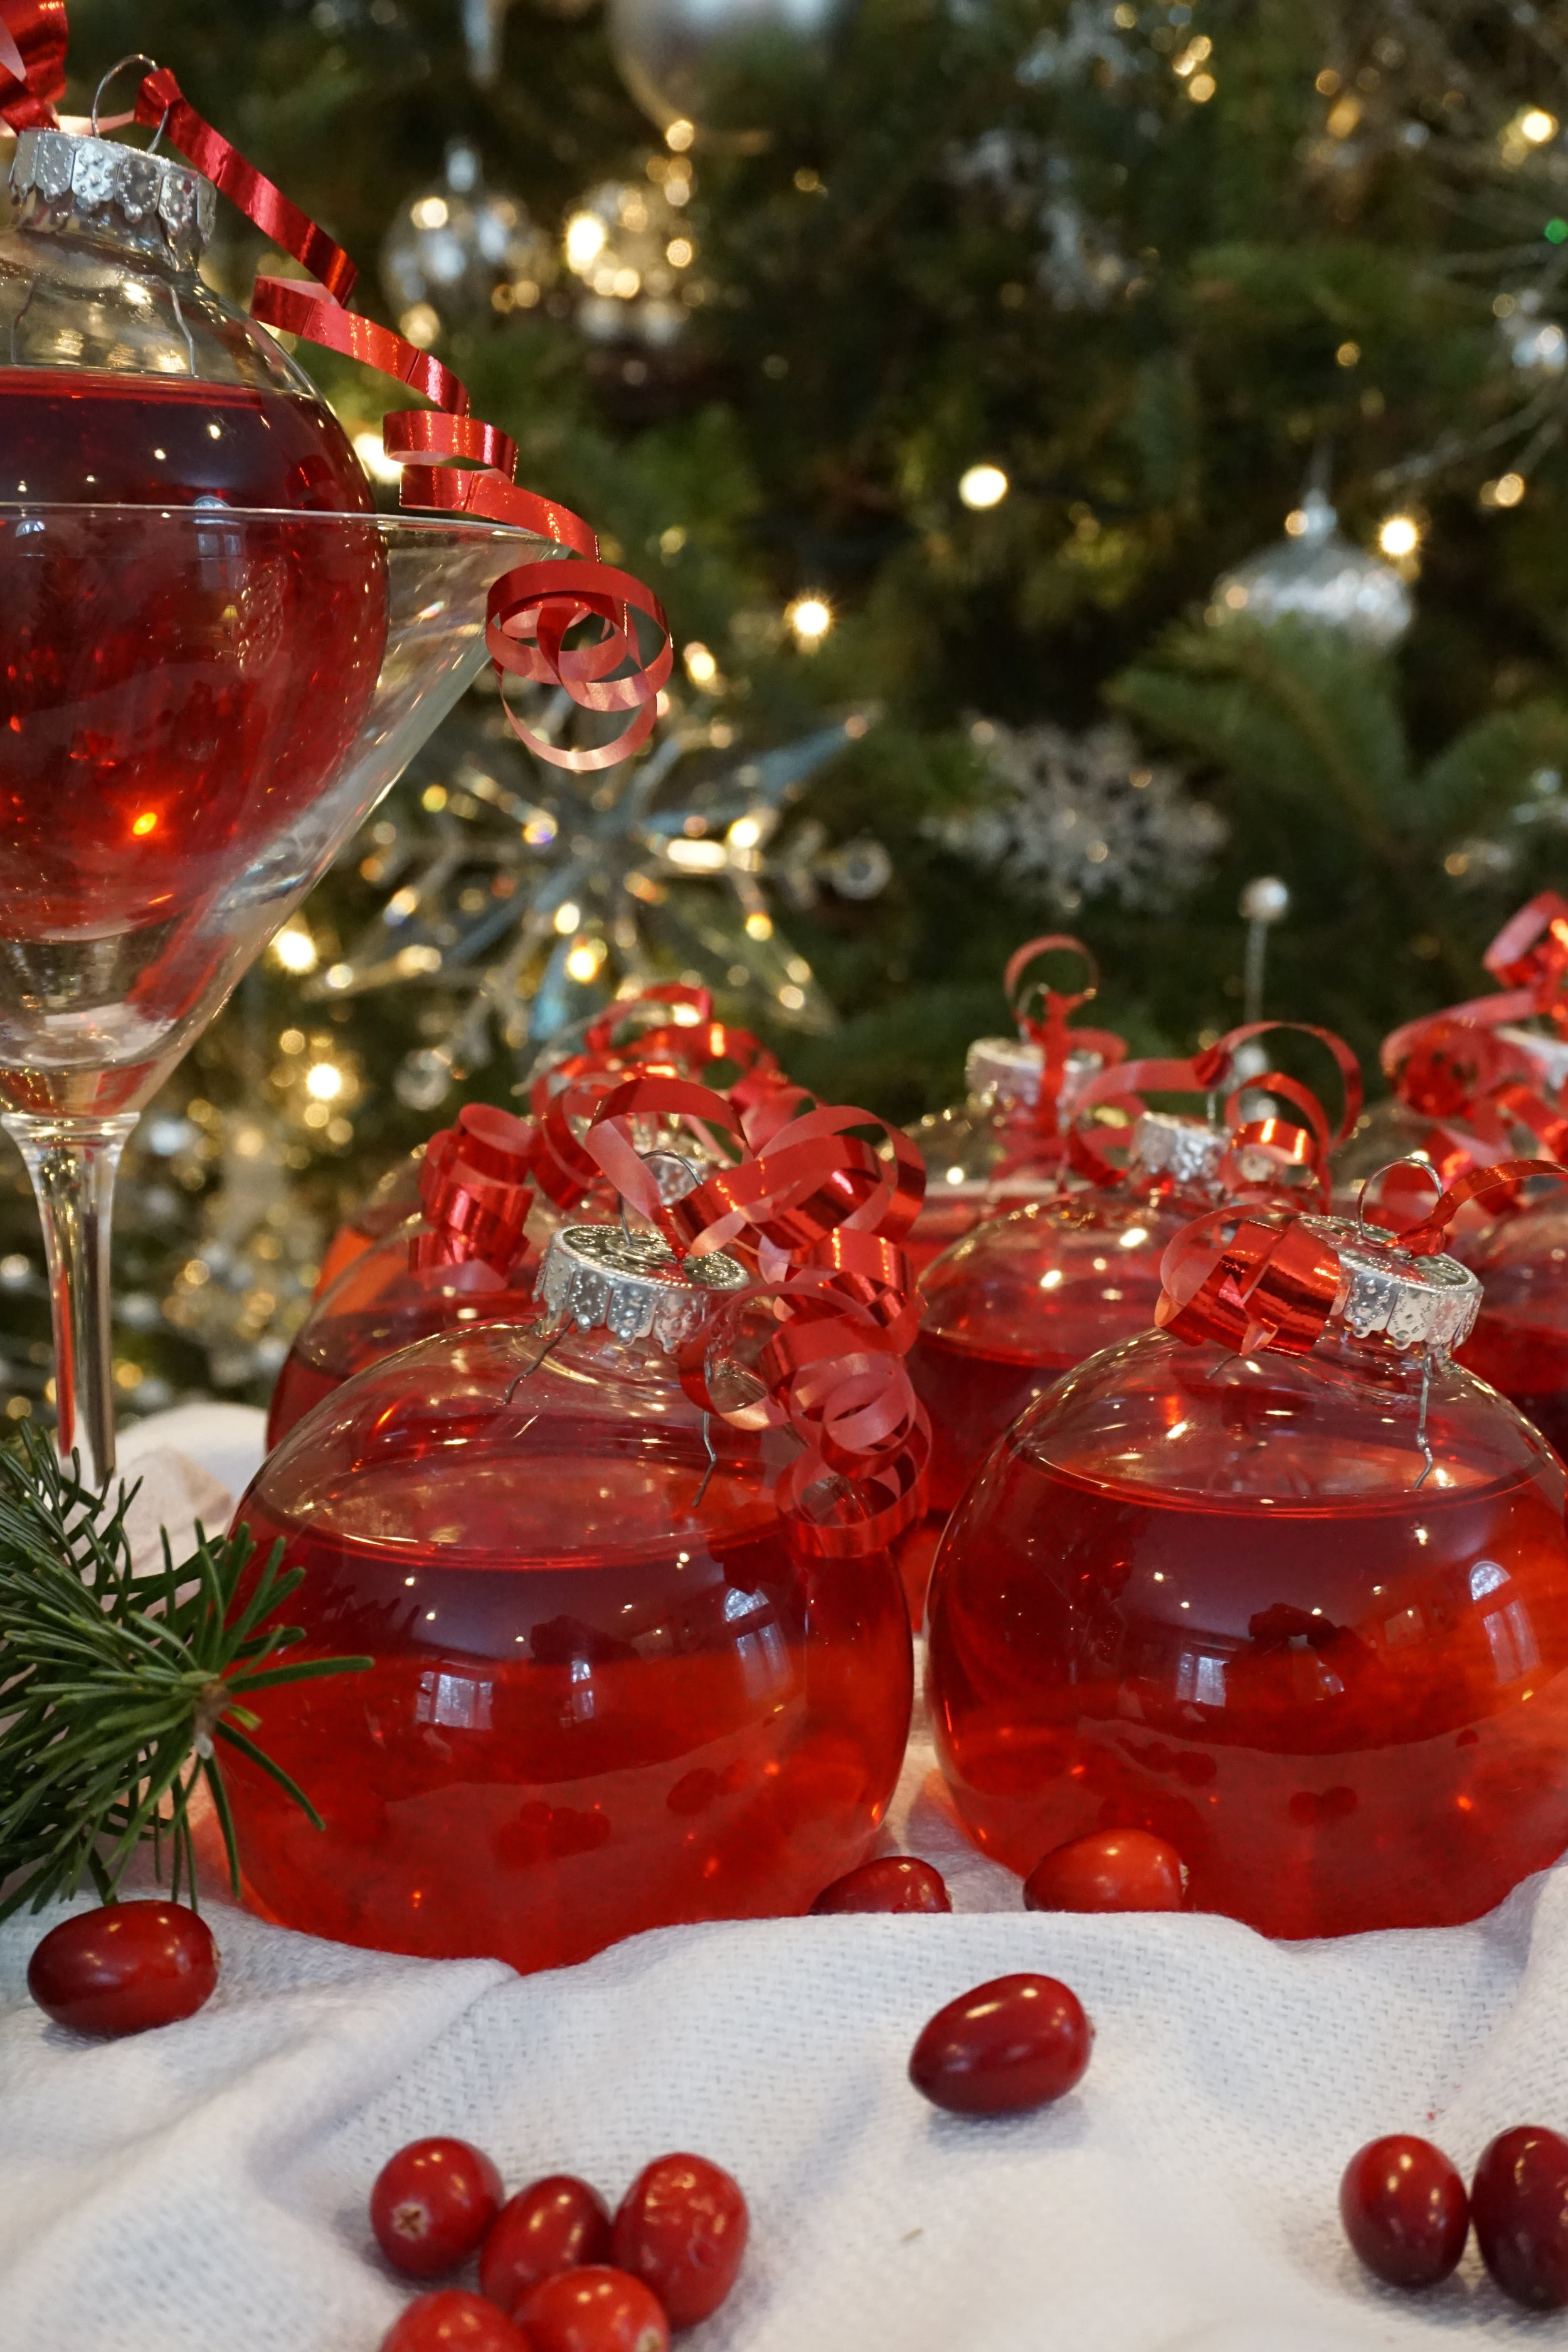 Christmas ornaments with wine charm